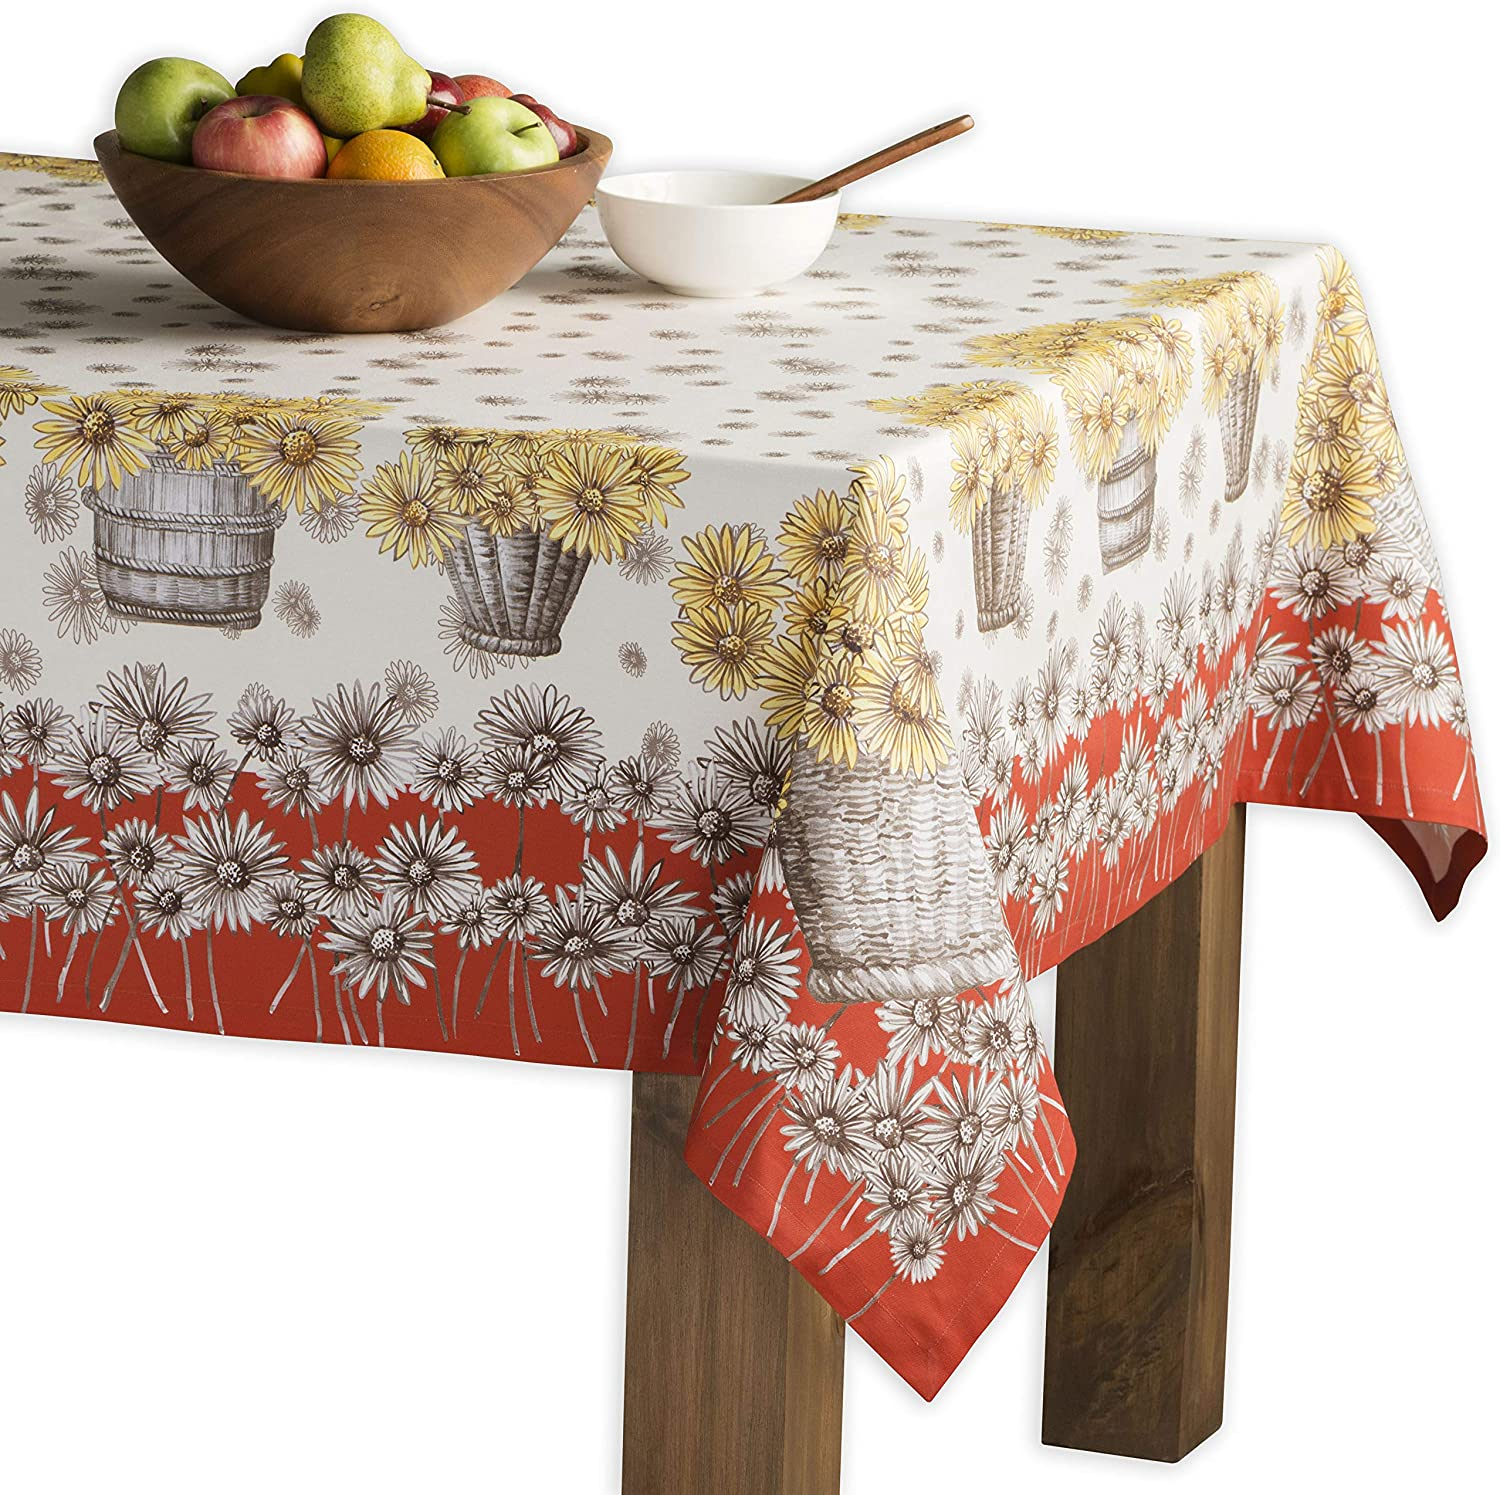 Maison d' Free shipping anywhere in the nation Hermine Bagatelle 100% for Tablecloth Max 75% OFF Cotton D Kitchen